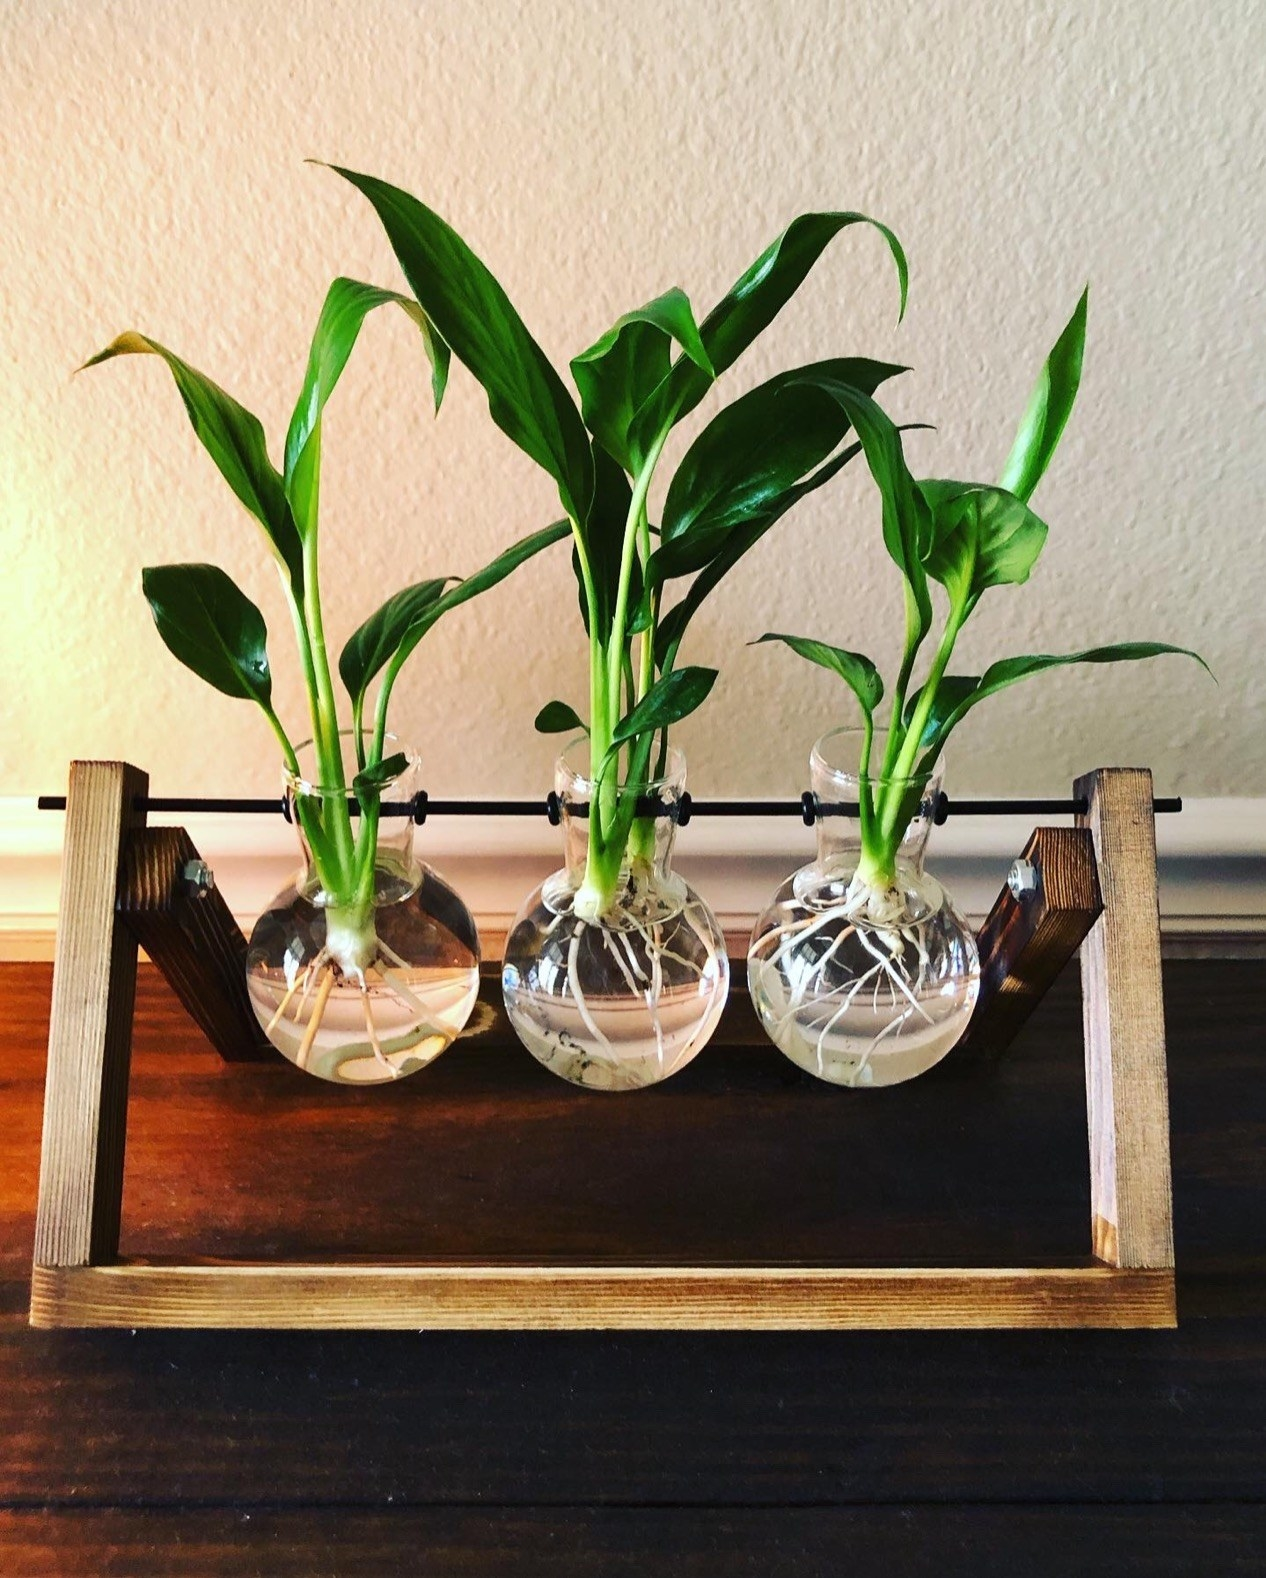 Reviewer's trio of glass bulbs have plant stems propagating in them